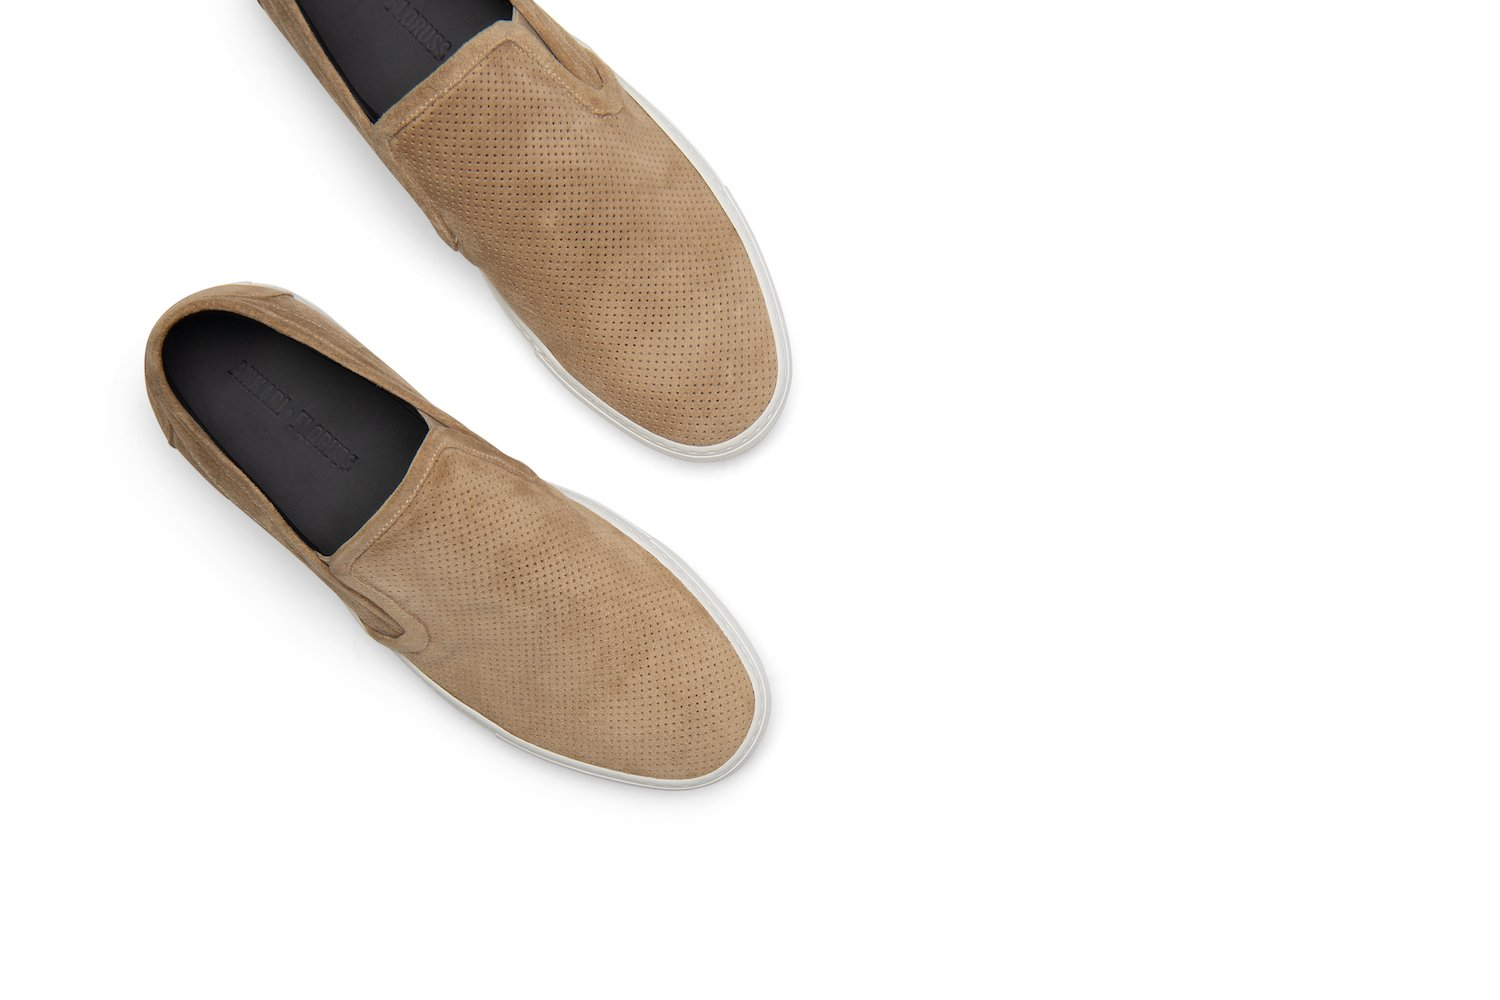 Tuesday Slip-On Sneaker in Beige